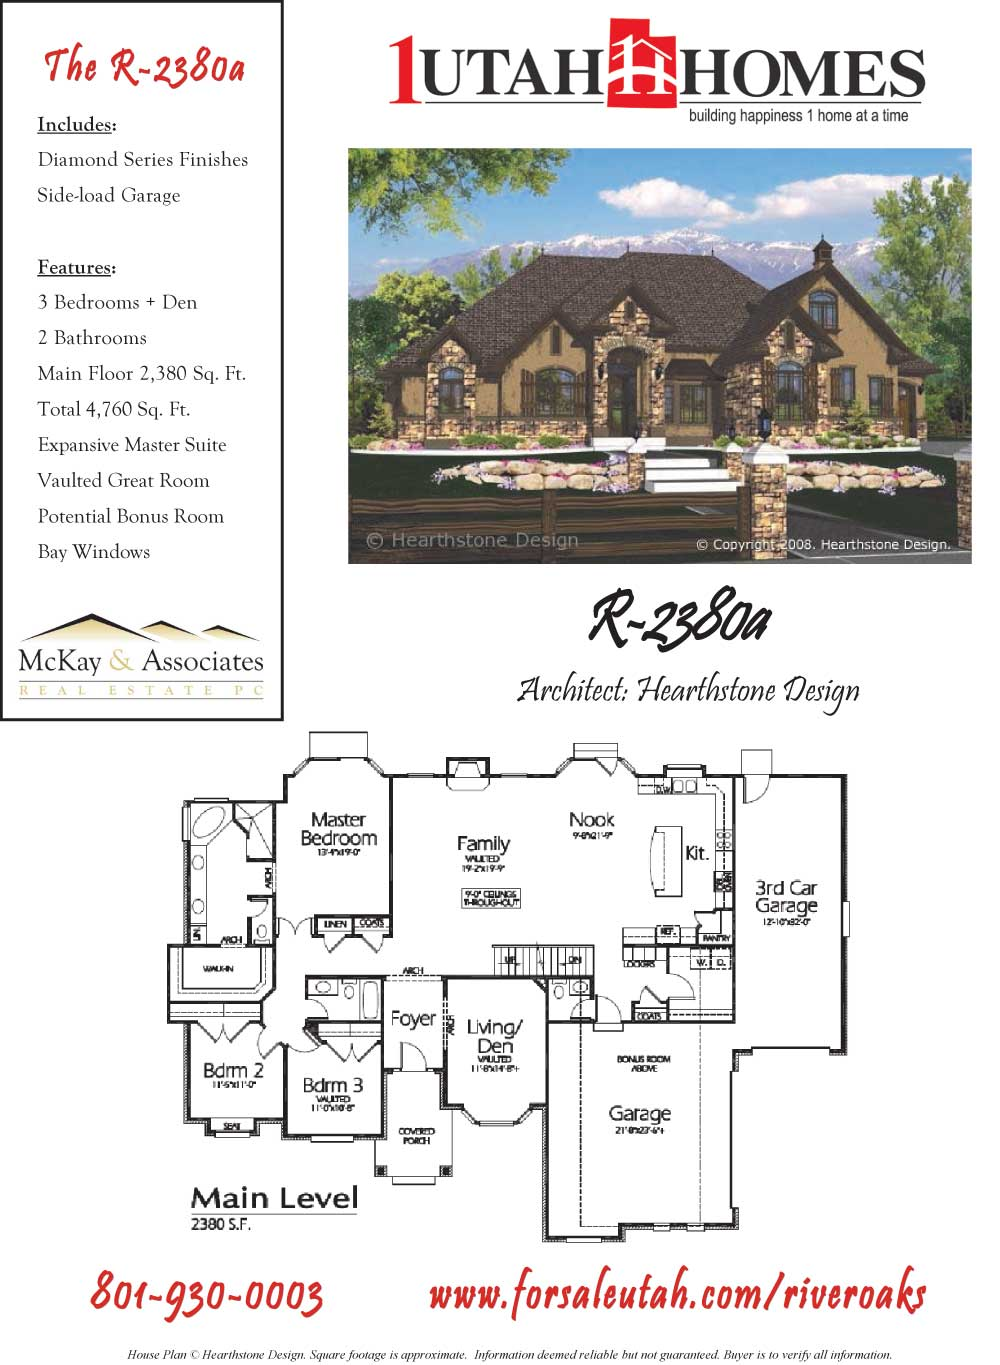 1 Utah Homes River Oaks Estate Home Plans